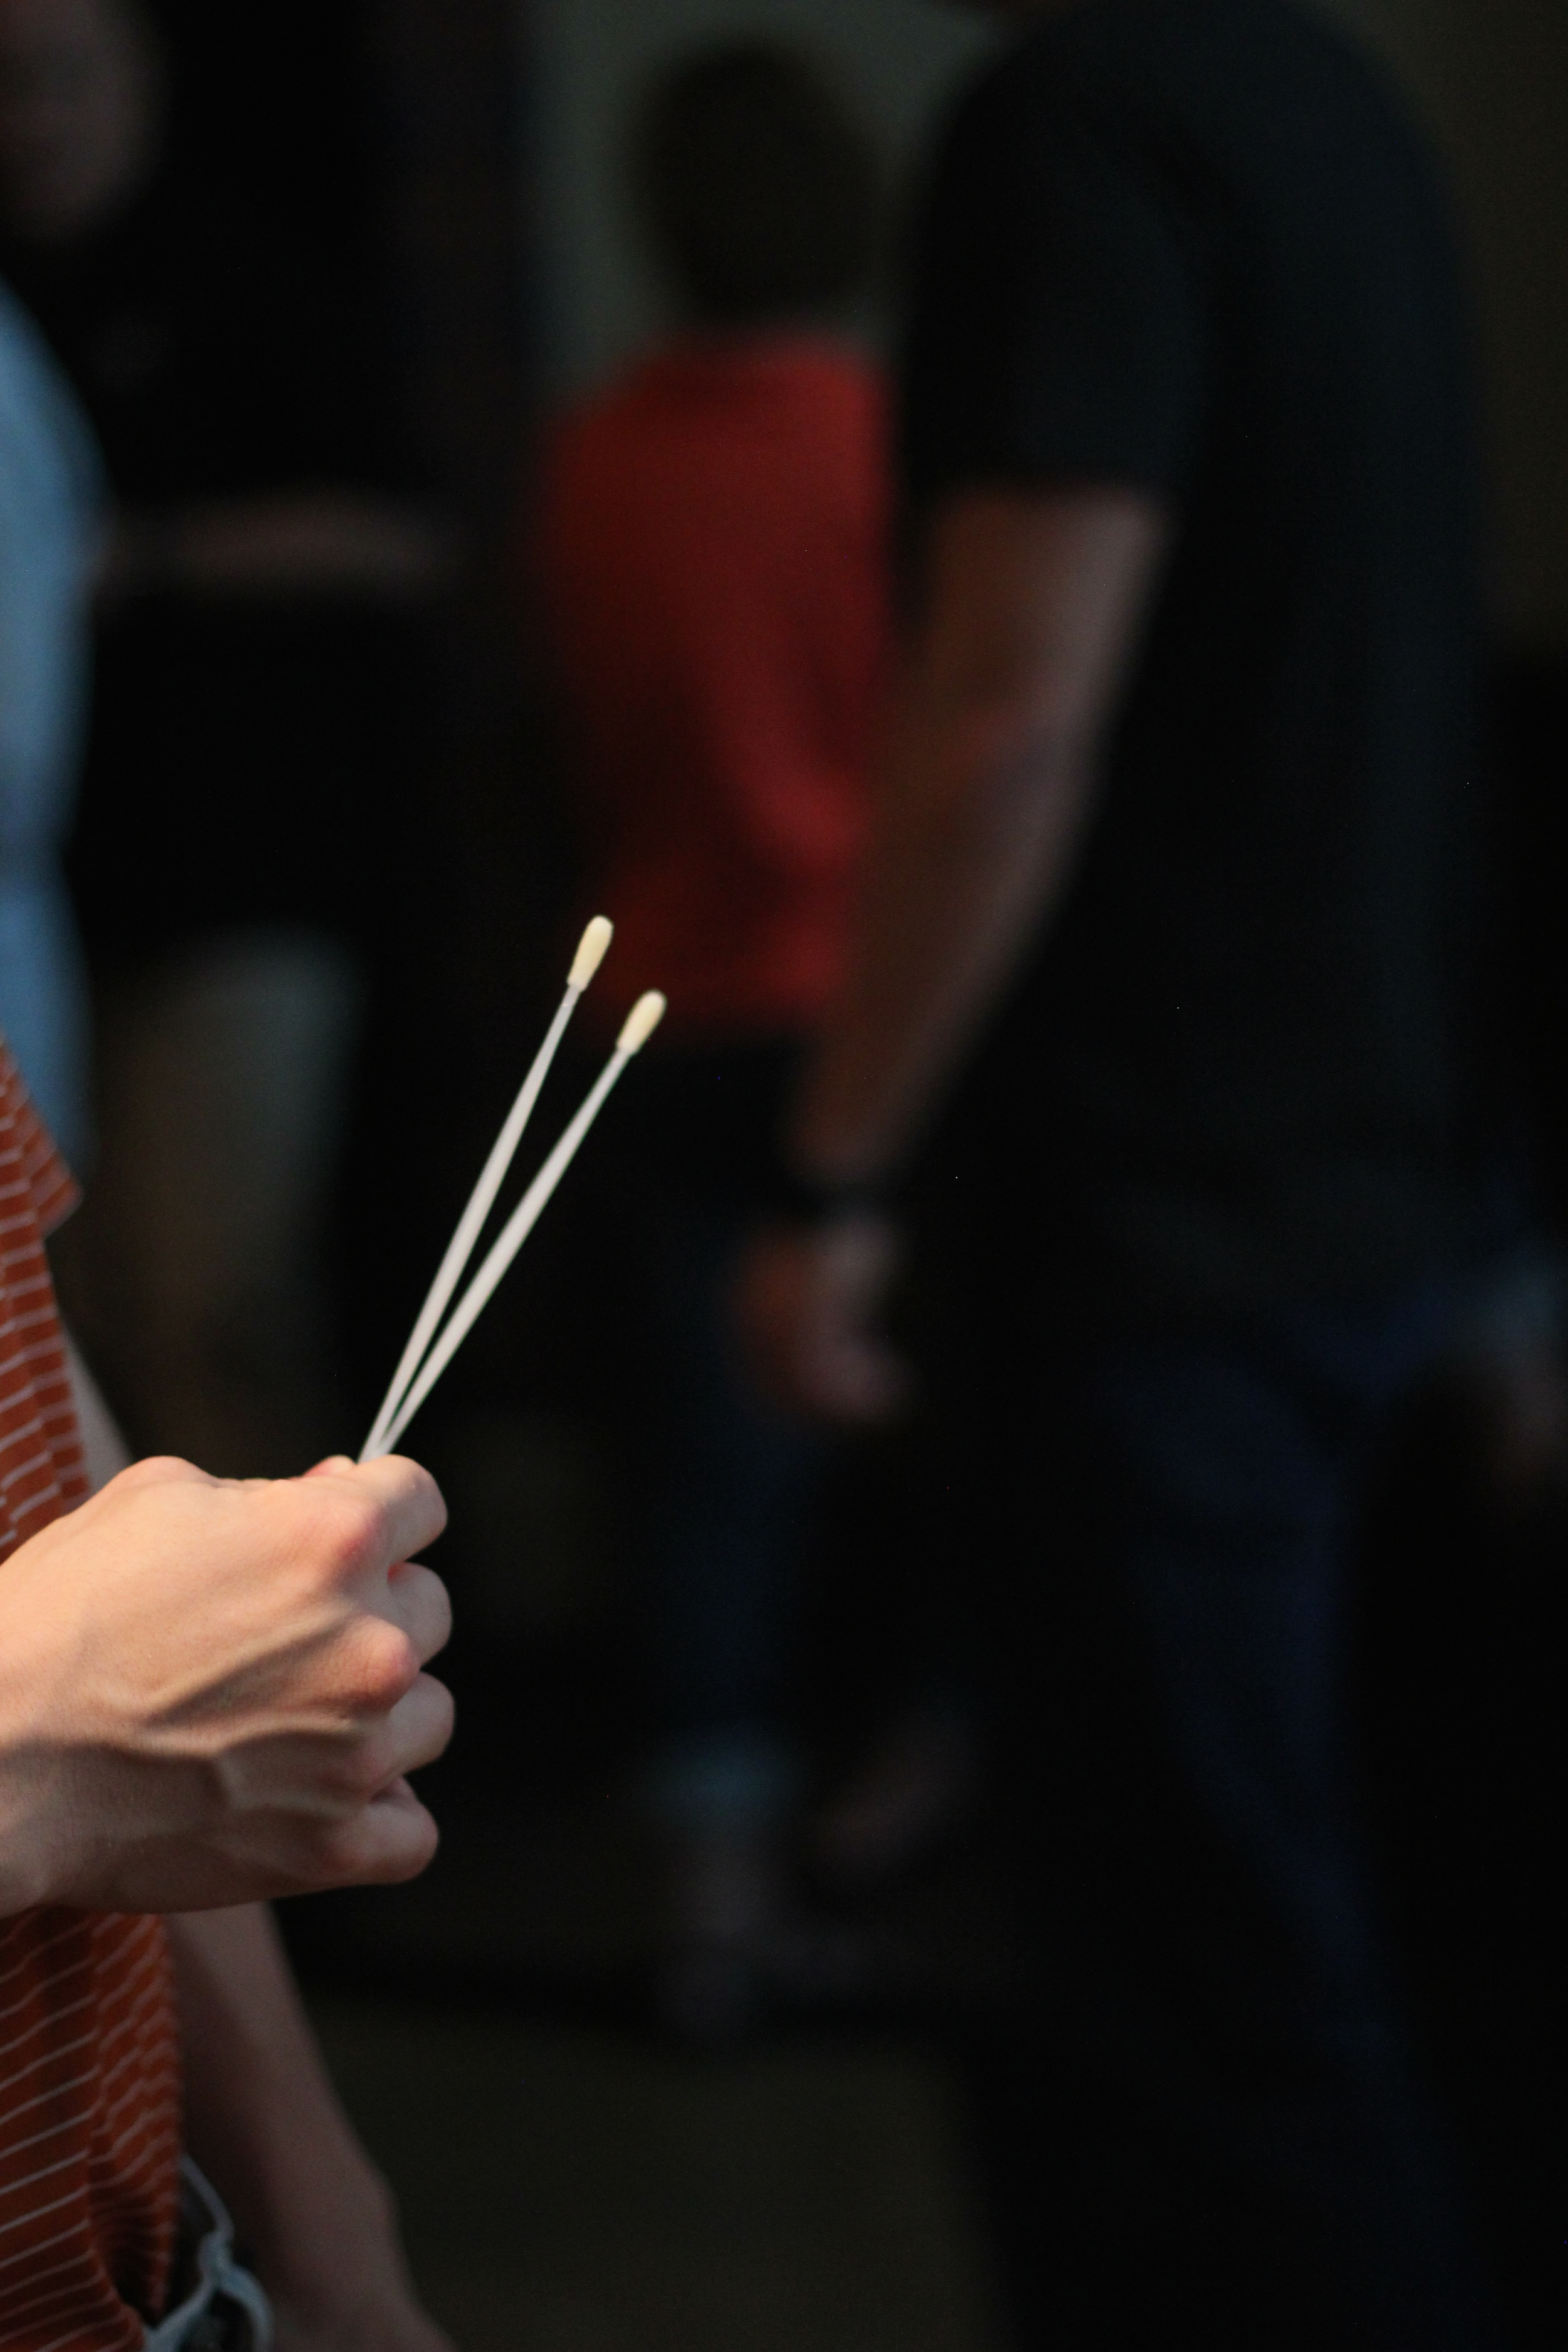 A simple cotton swap test is used to find matches for bone marrow donors.